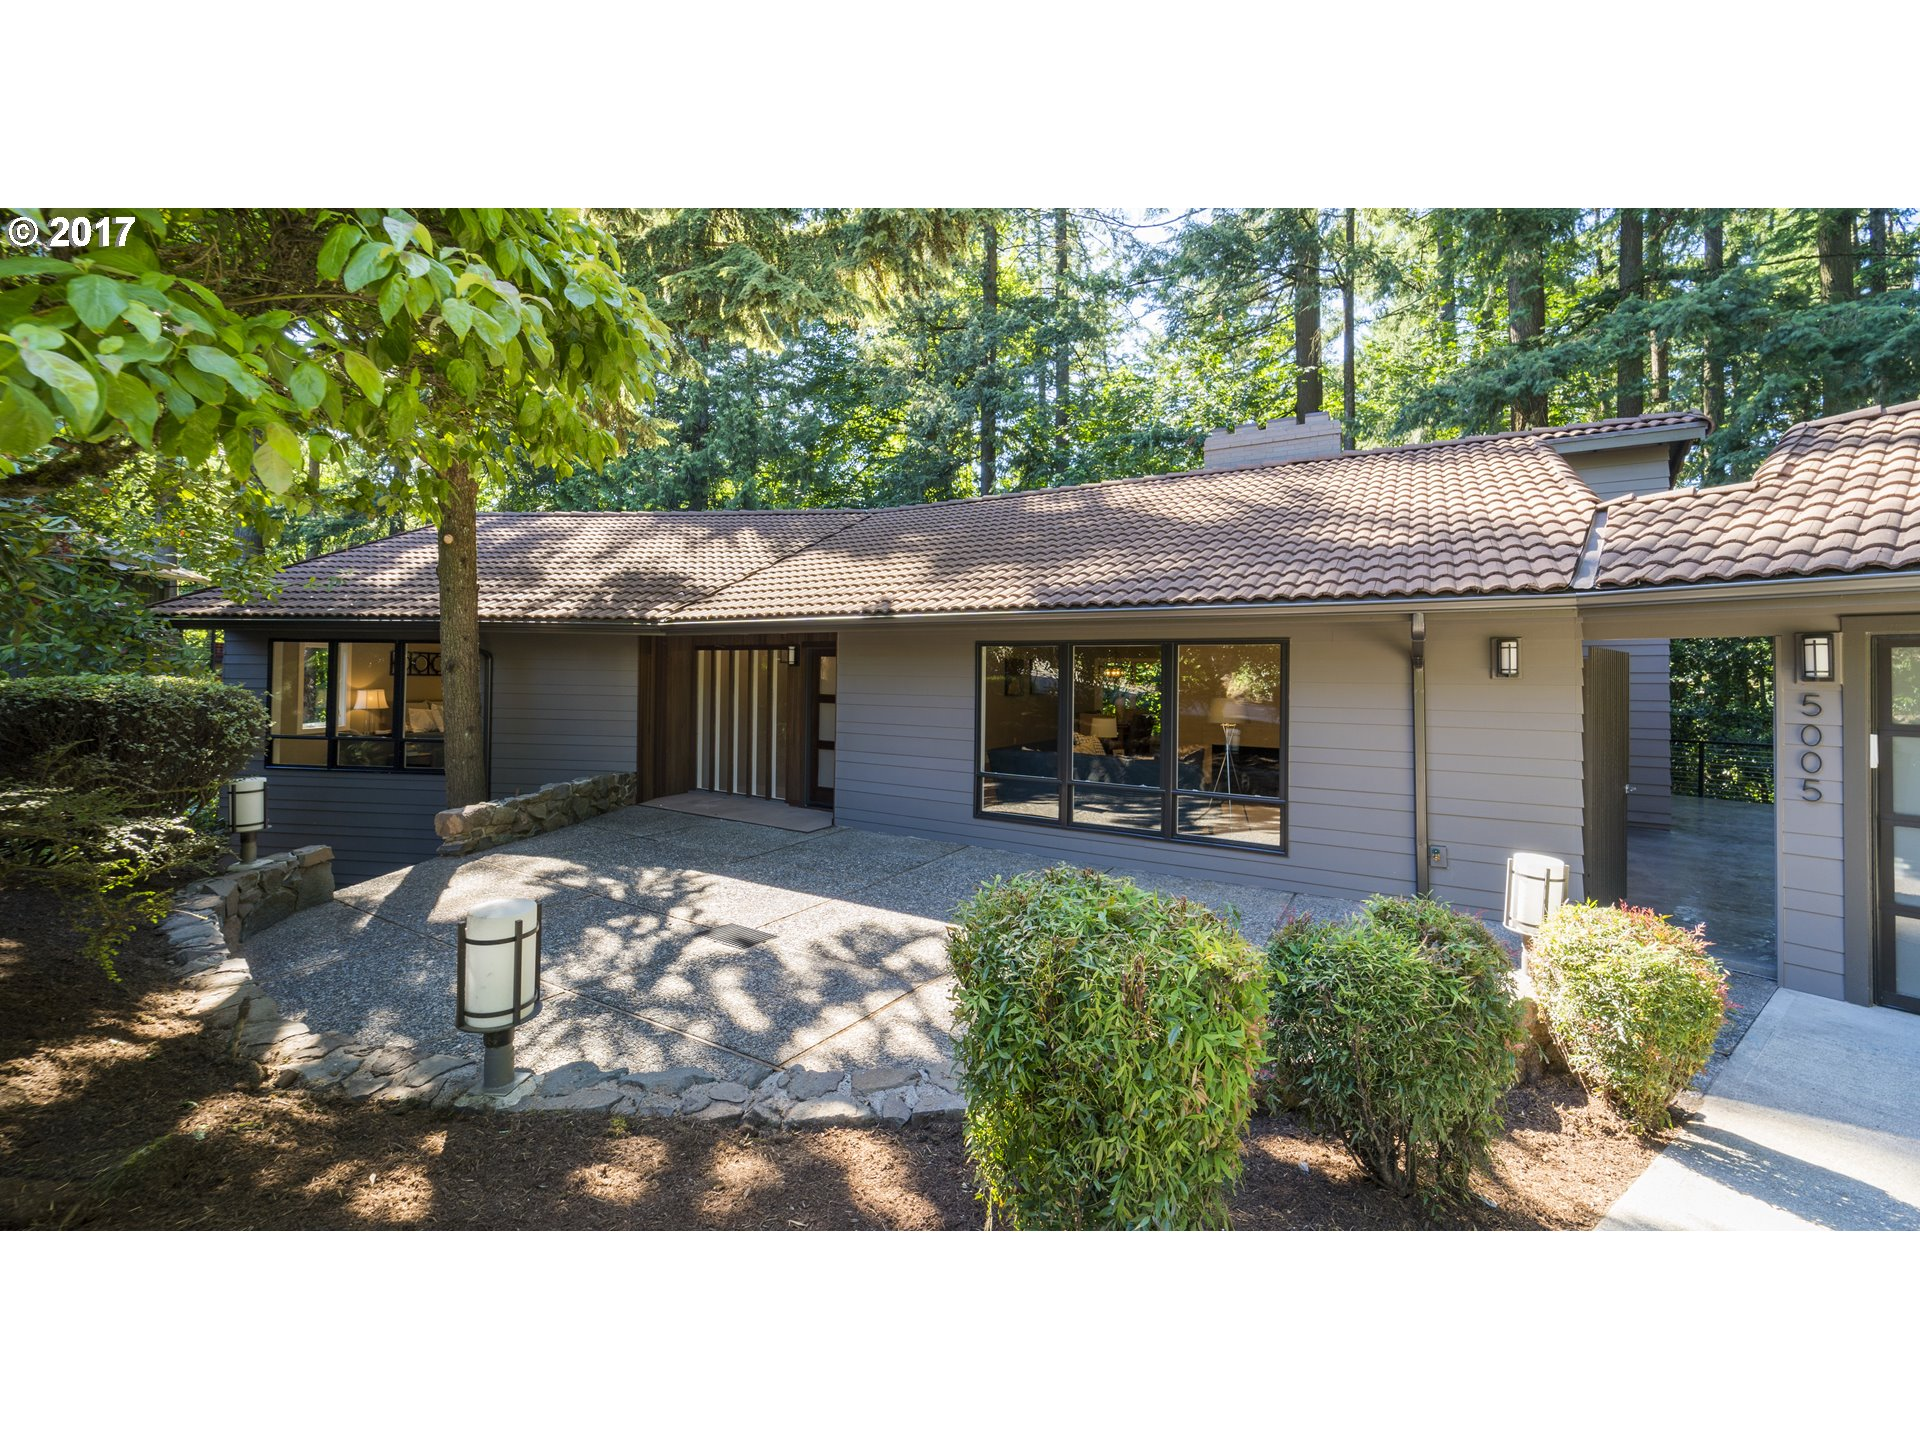 4053 sq. ft 5 bedrooms 3 bathrooms  House ,Portland, OR